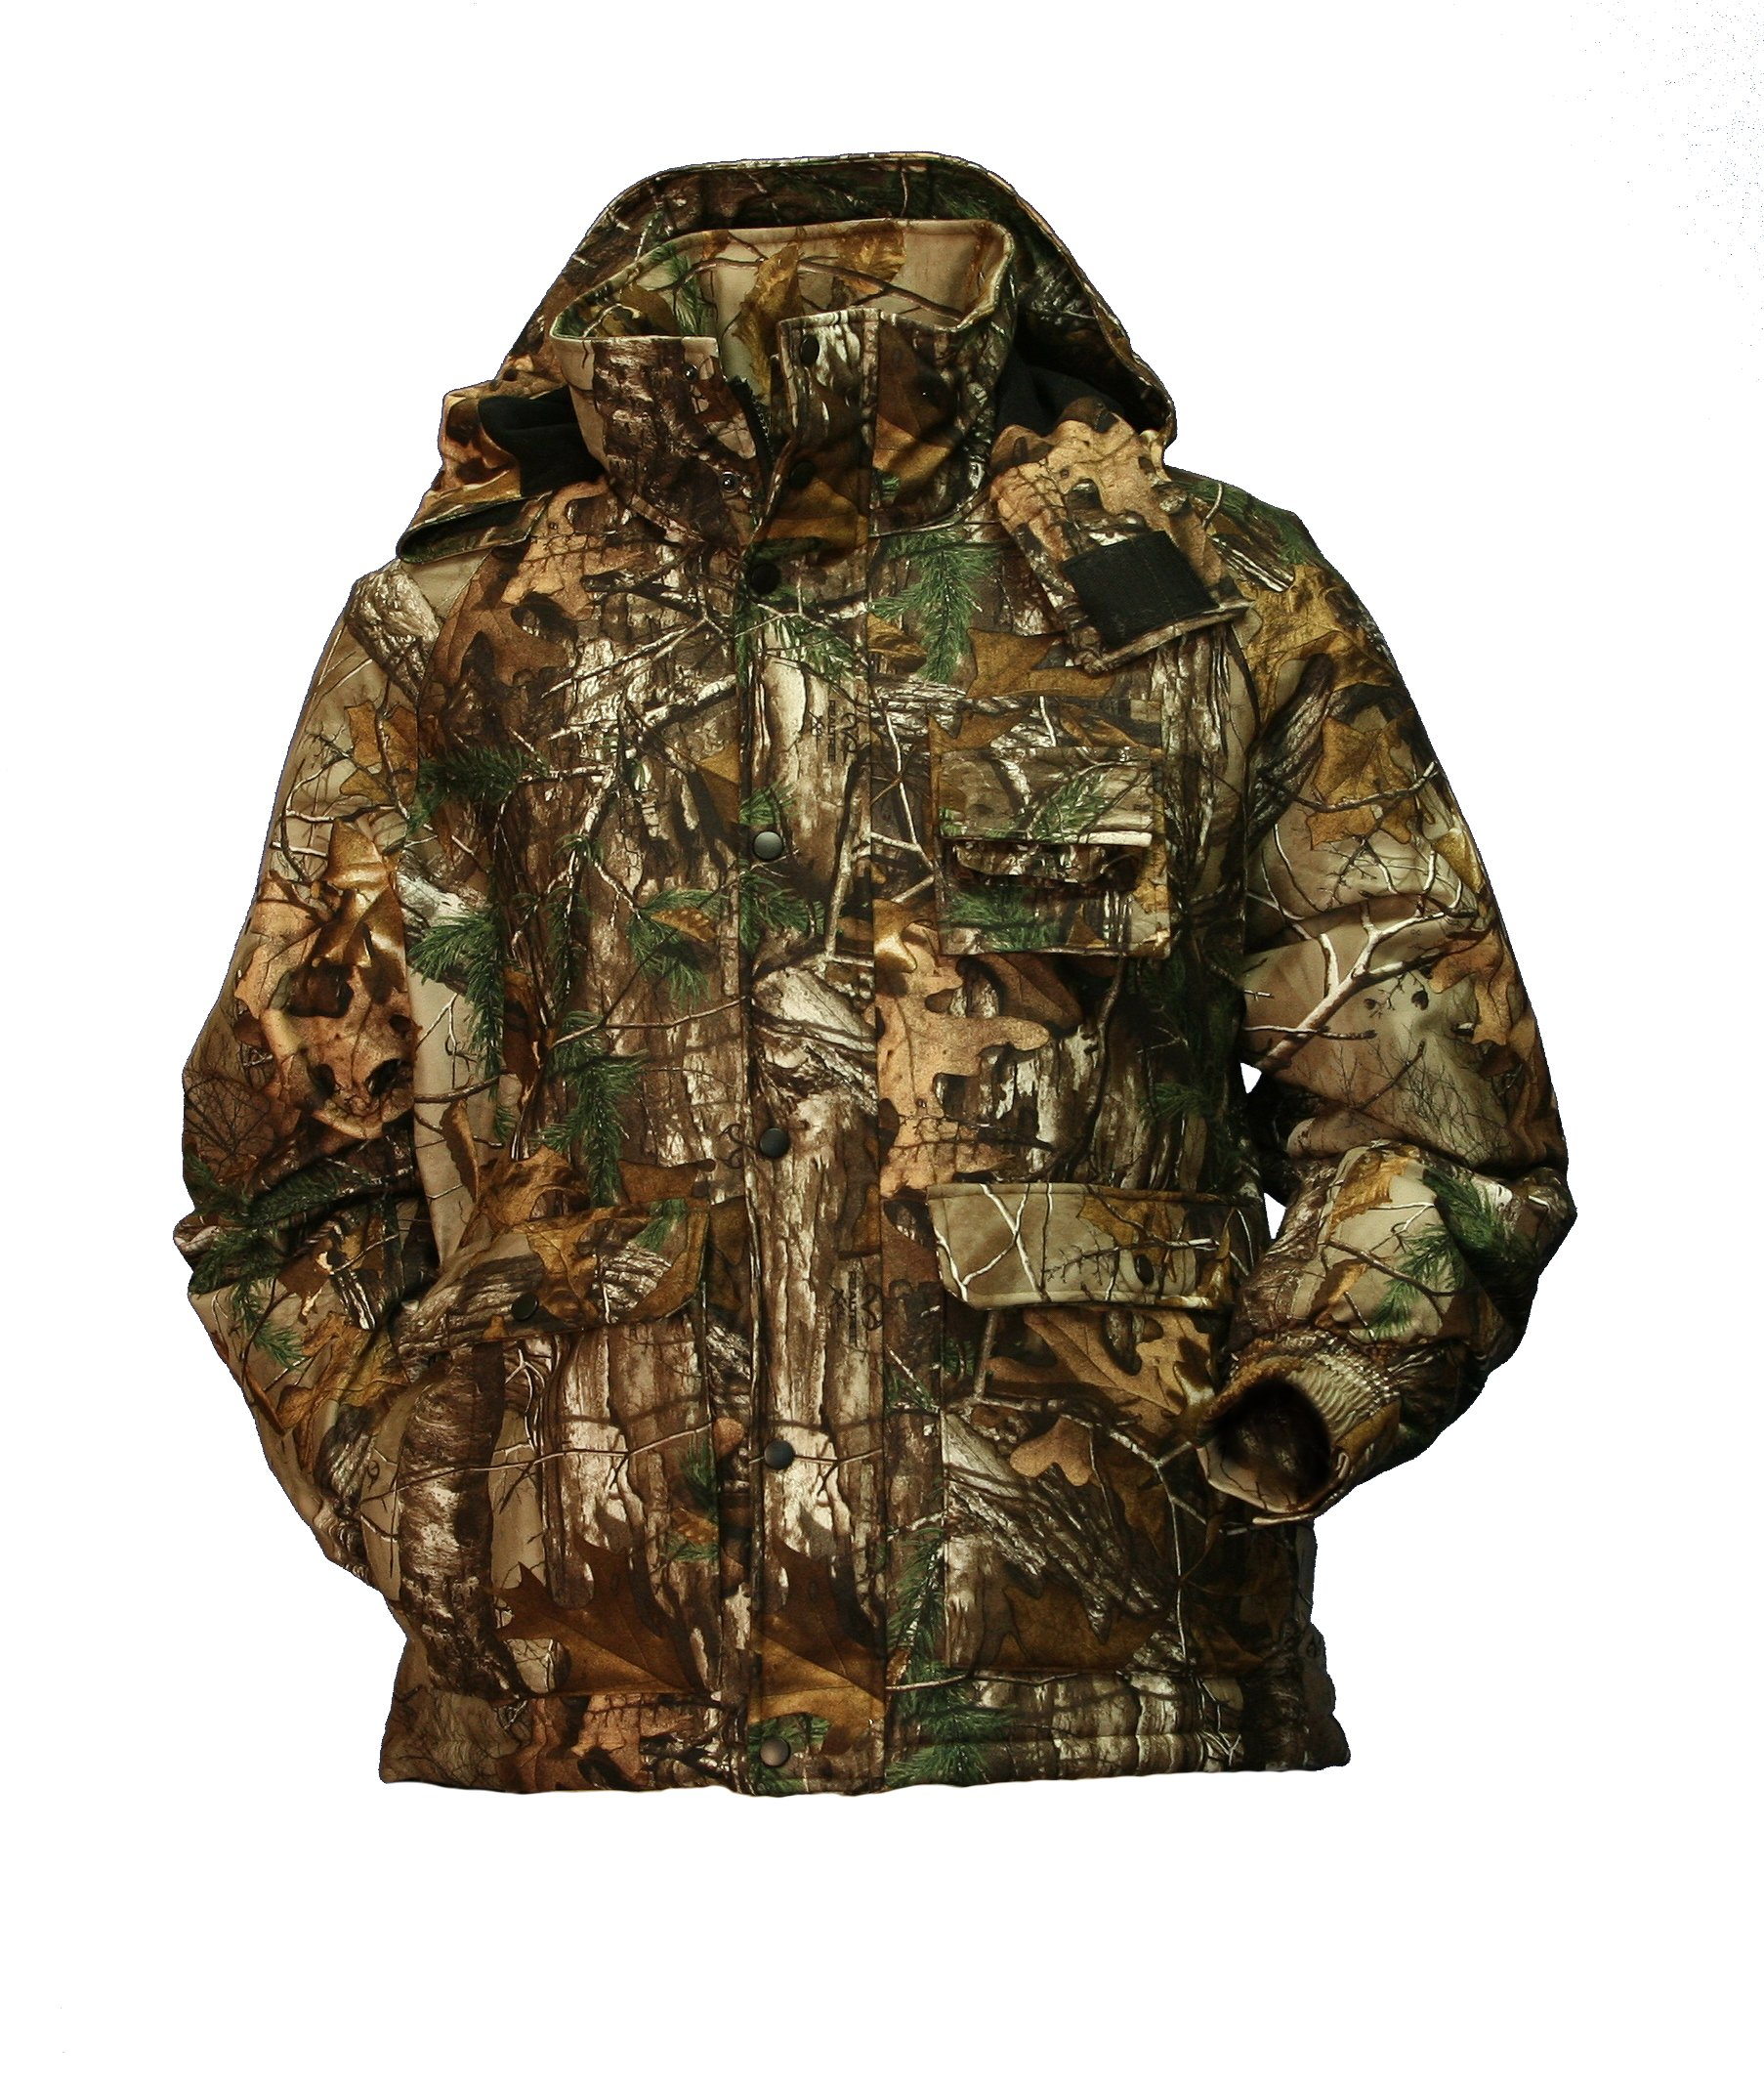 Gamehide Flatland Deer Hunting Parka (Realtree Xtra, X-Large) by Gamehide